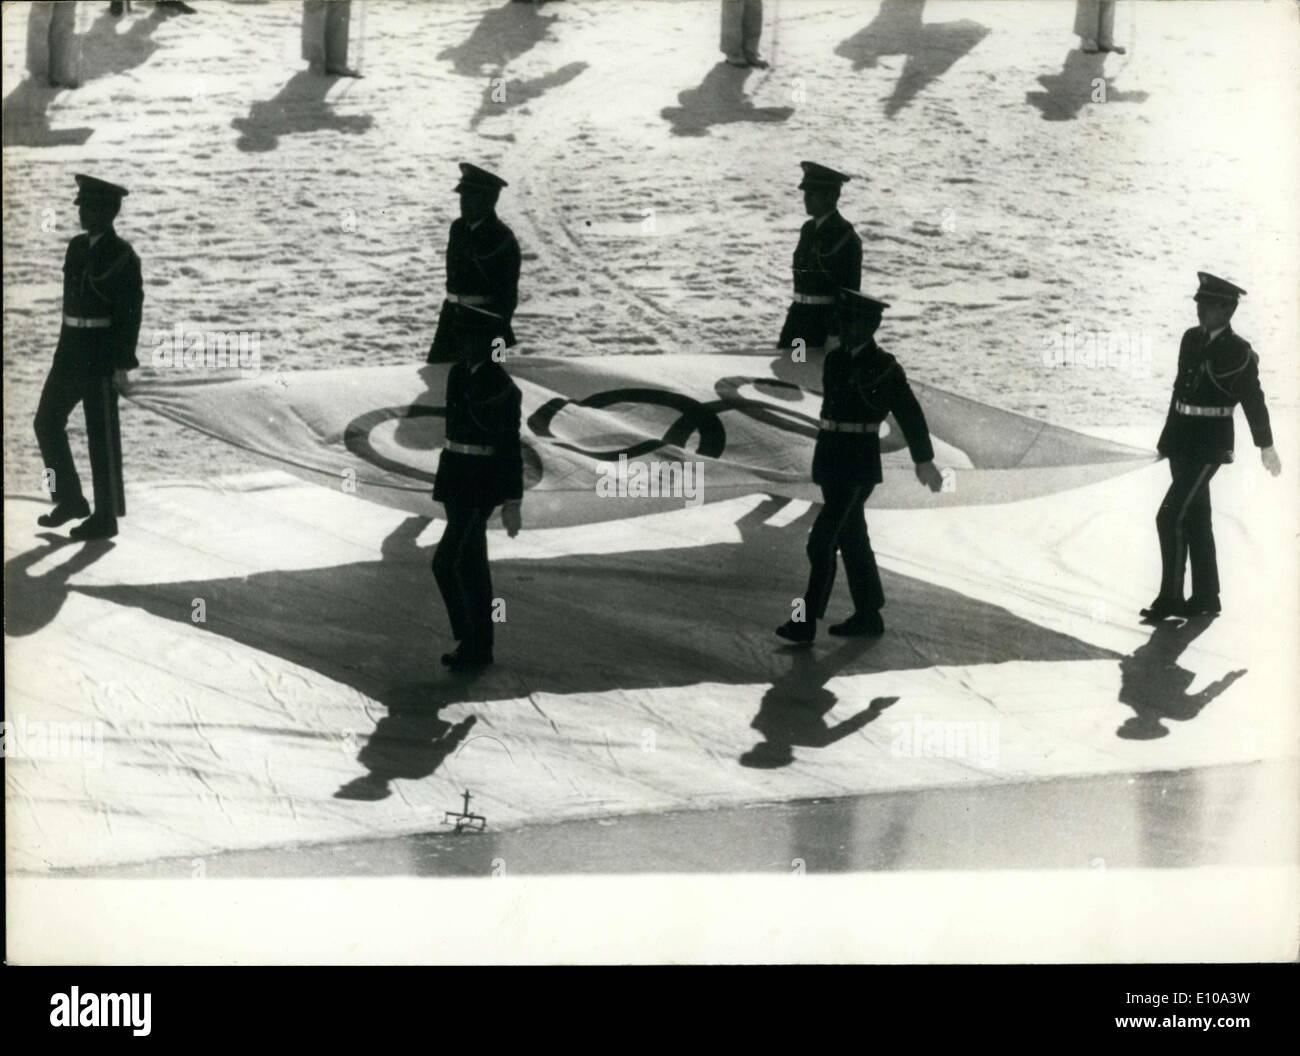 Feb. 14, 1972 - Opening Ceremonies of the Sapporo Olympic Games in Japan - Stock Image